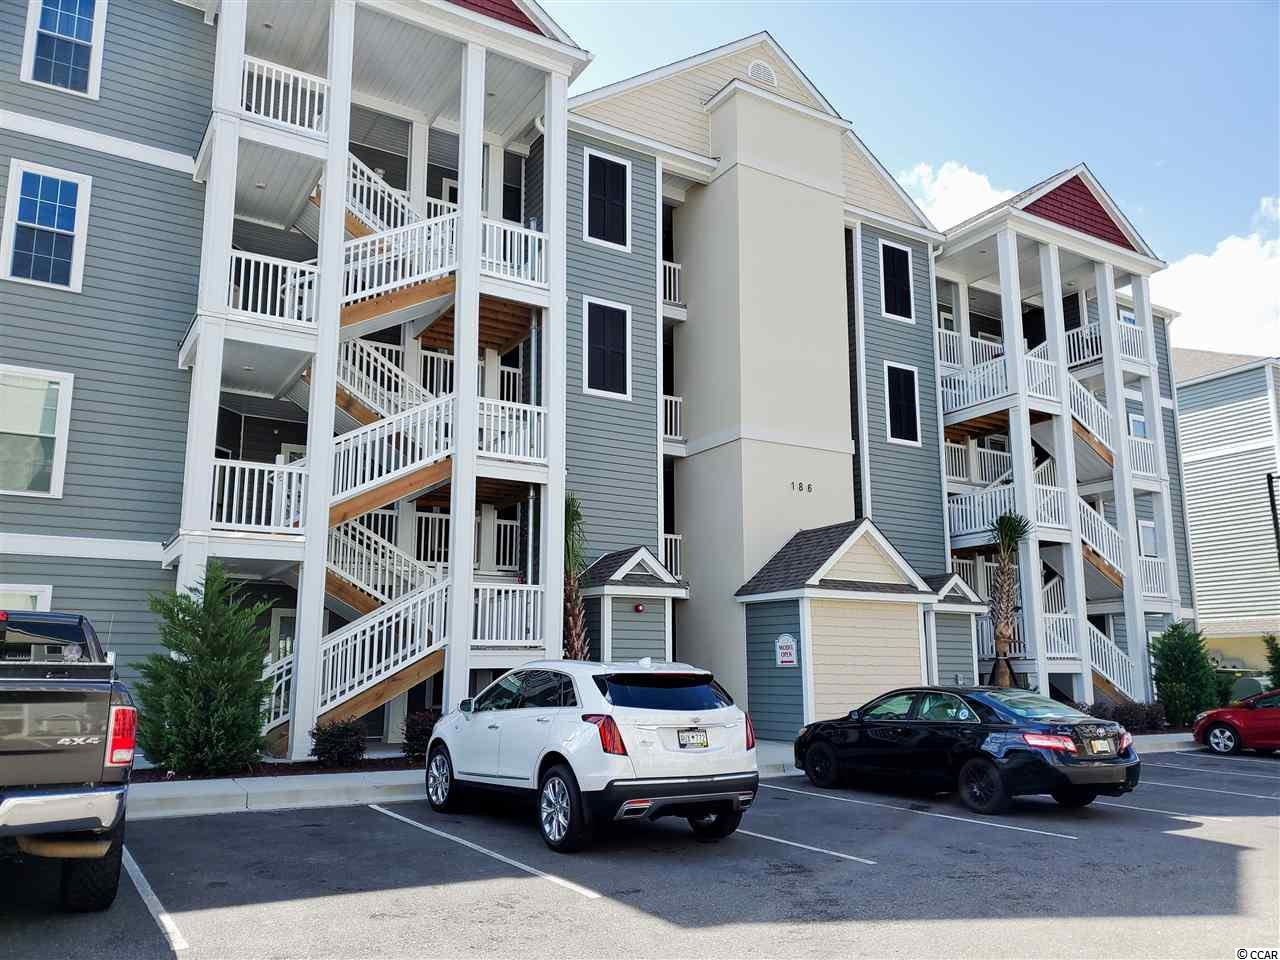 Opportunity to purchase this 7 months new move in ready condo in one of the most successful developments in the Myrtle Beach area.  Located in the very popular Village of Queens Harbour II development with elevators and outside storage unit.  Beautiful resort style pool and cabana.  This desirable 1390 sf 4th floor end unit with screen porch overlooking the pool.  2 master bedrooms, 2 full baths with many upgrades.  Wood flooring and tile throughout, granite counter tops, upgraded kitchen cabinets with glass inserts, tray ceiling in Master bedroom and Family Room, palm tree etching on patio door, window treatment, washer, dryer and refrigerator with water and ice. Resort style community pool with clubhouse and picnic area with barbeques.  Conveniently located to shopping, area beaches, dining and area attractions.  All measurements and square footage are approximate and not guaranteed.  Buyer is responsible for verification.